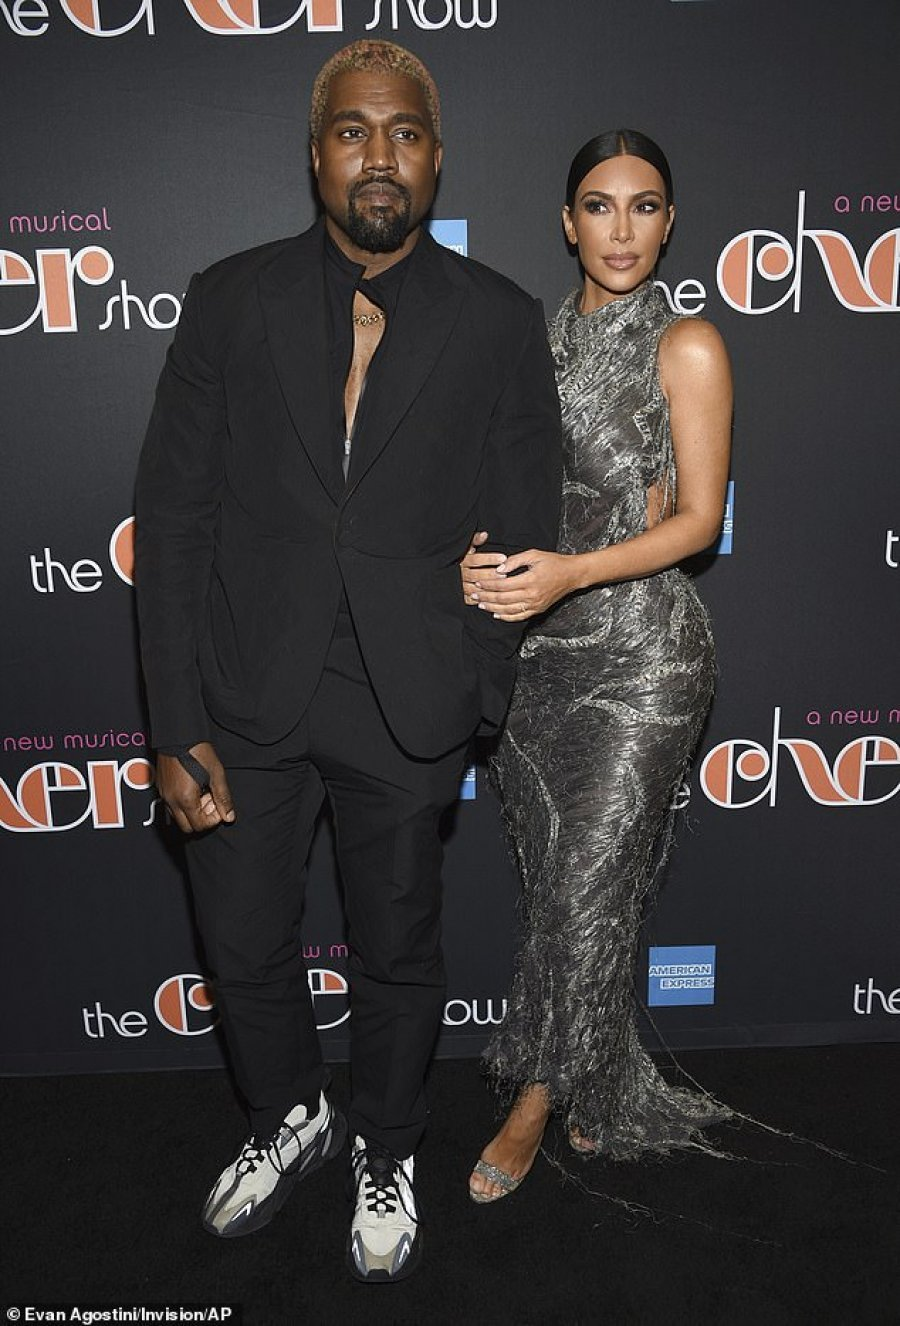 auto_6967624-6457041-Super_fans_On_Monday_night_Kim_Kardashian_and_Kanye_West_attende-a-49_15438934998861544025497